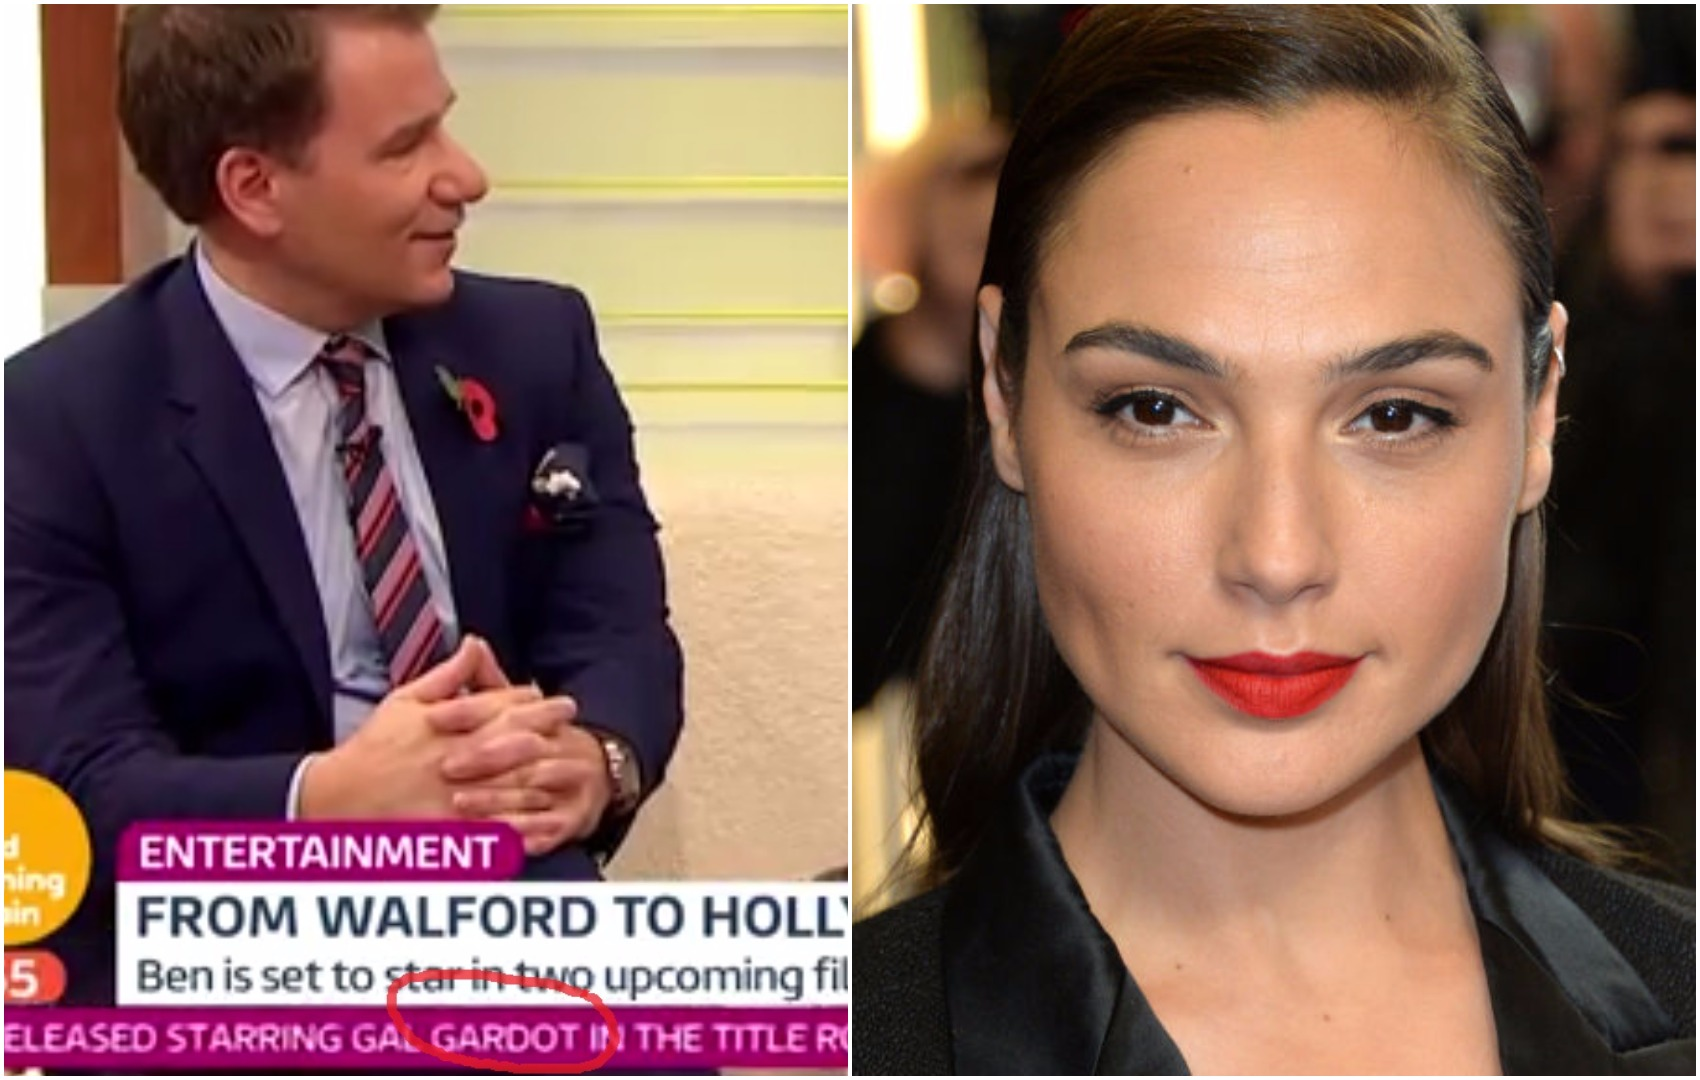 Good Morning Britain viewers appalled by their major misspelling of Hollywood star's name